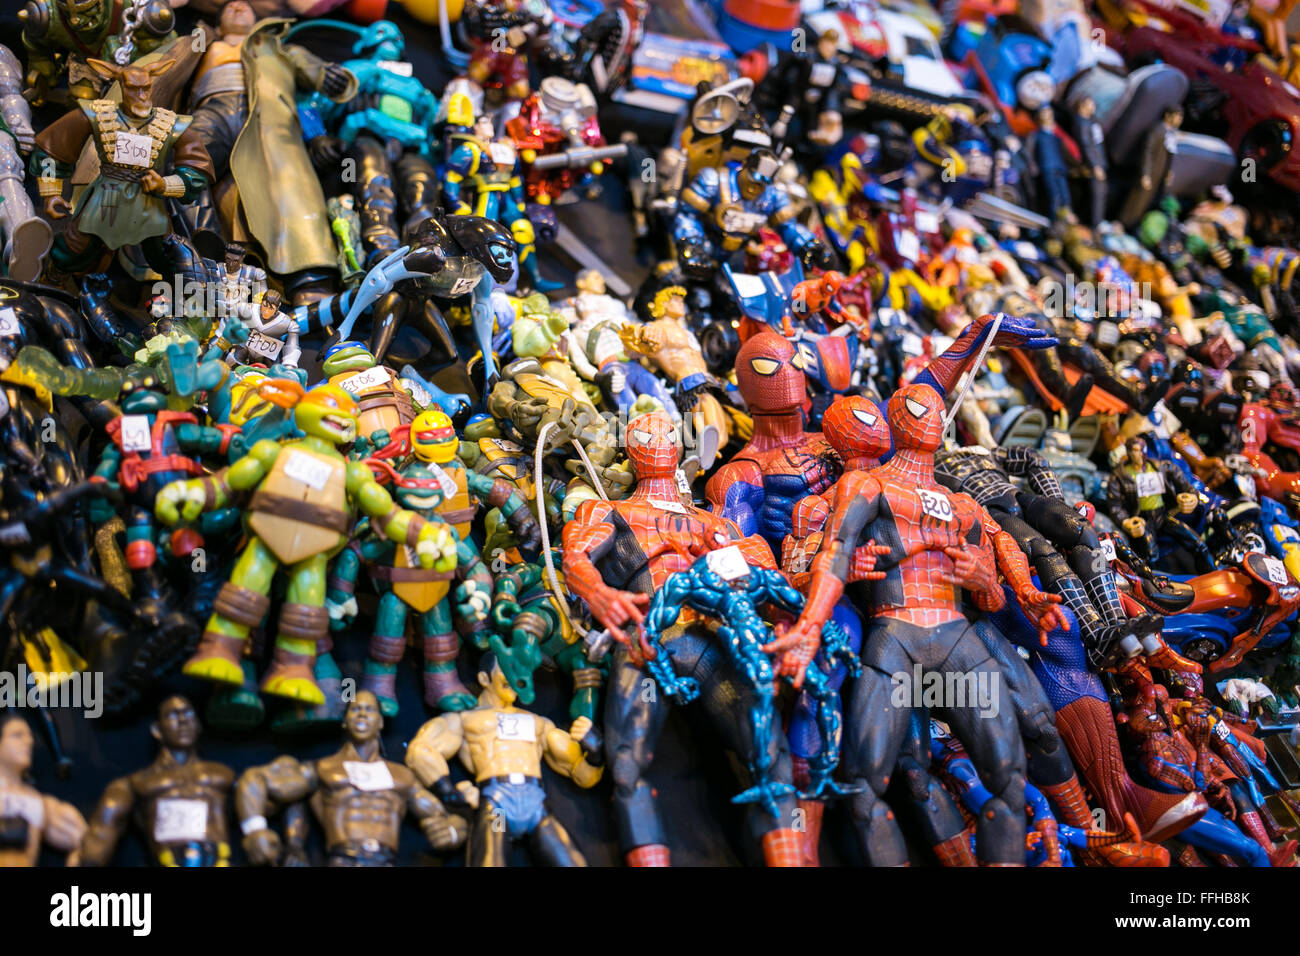 Birmingham, UK. 14th Feb, 2016. Toy Collectors Fair where people can buy antique and new collectable toys. Credit: - Stock Image